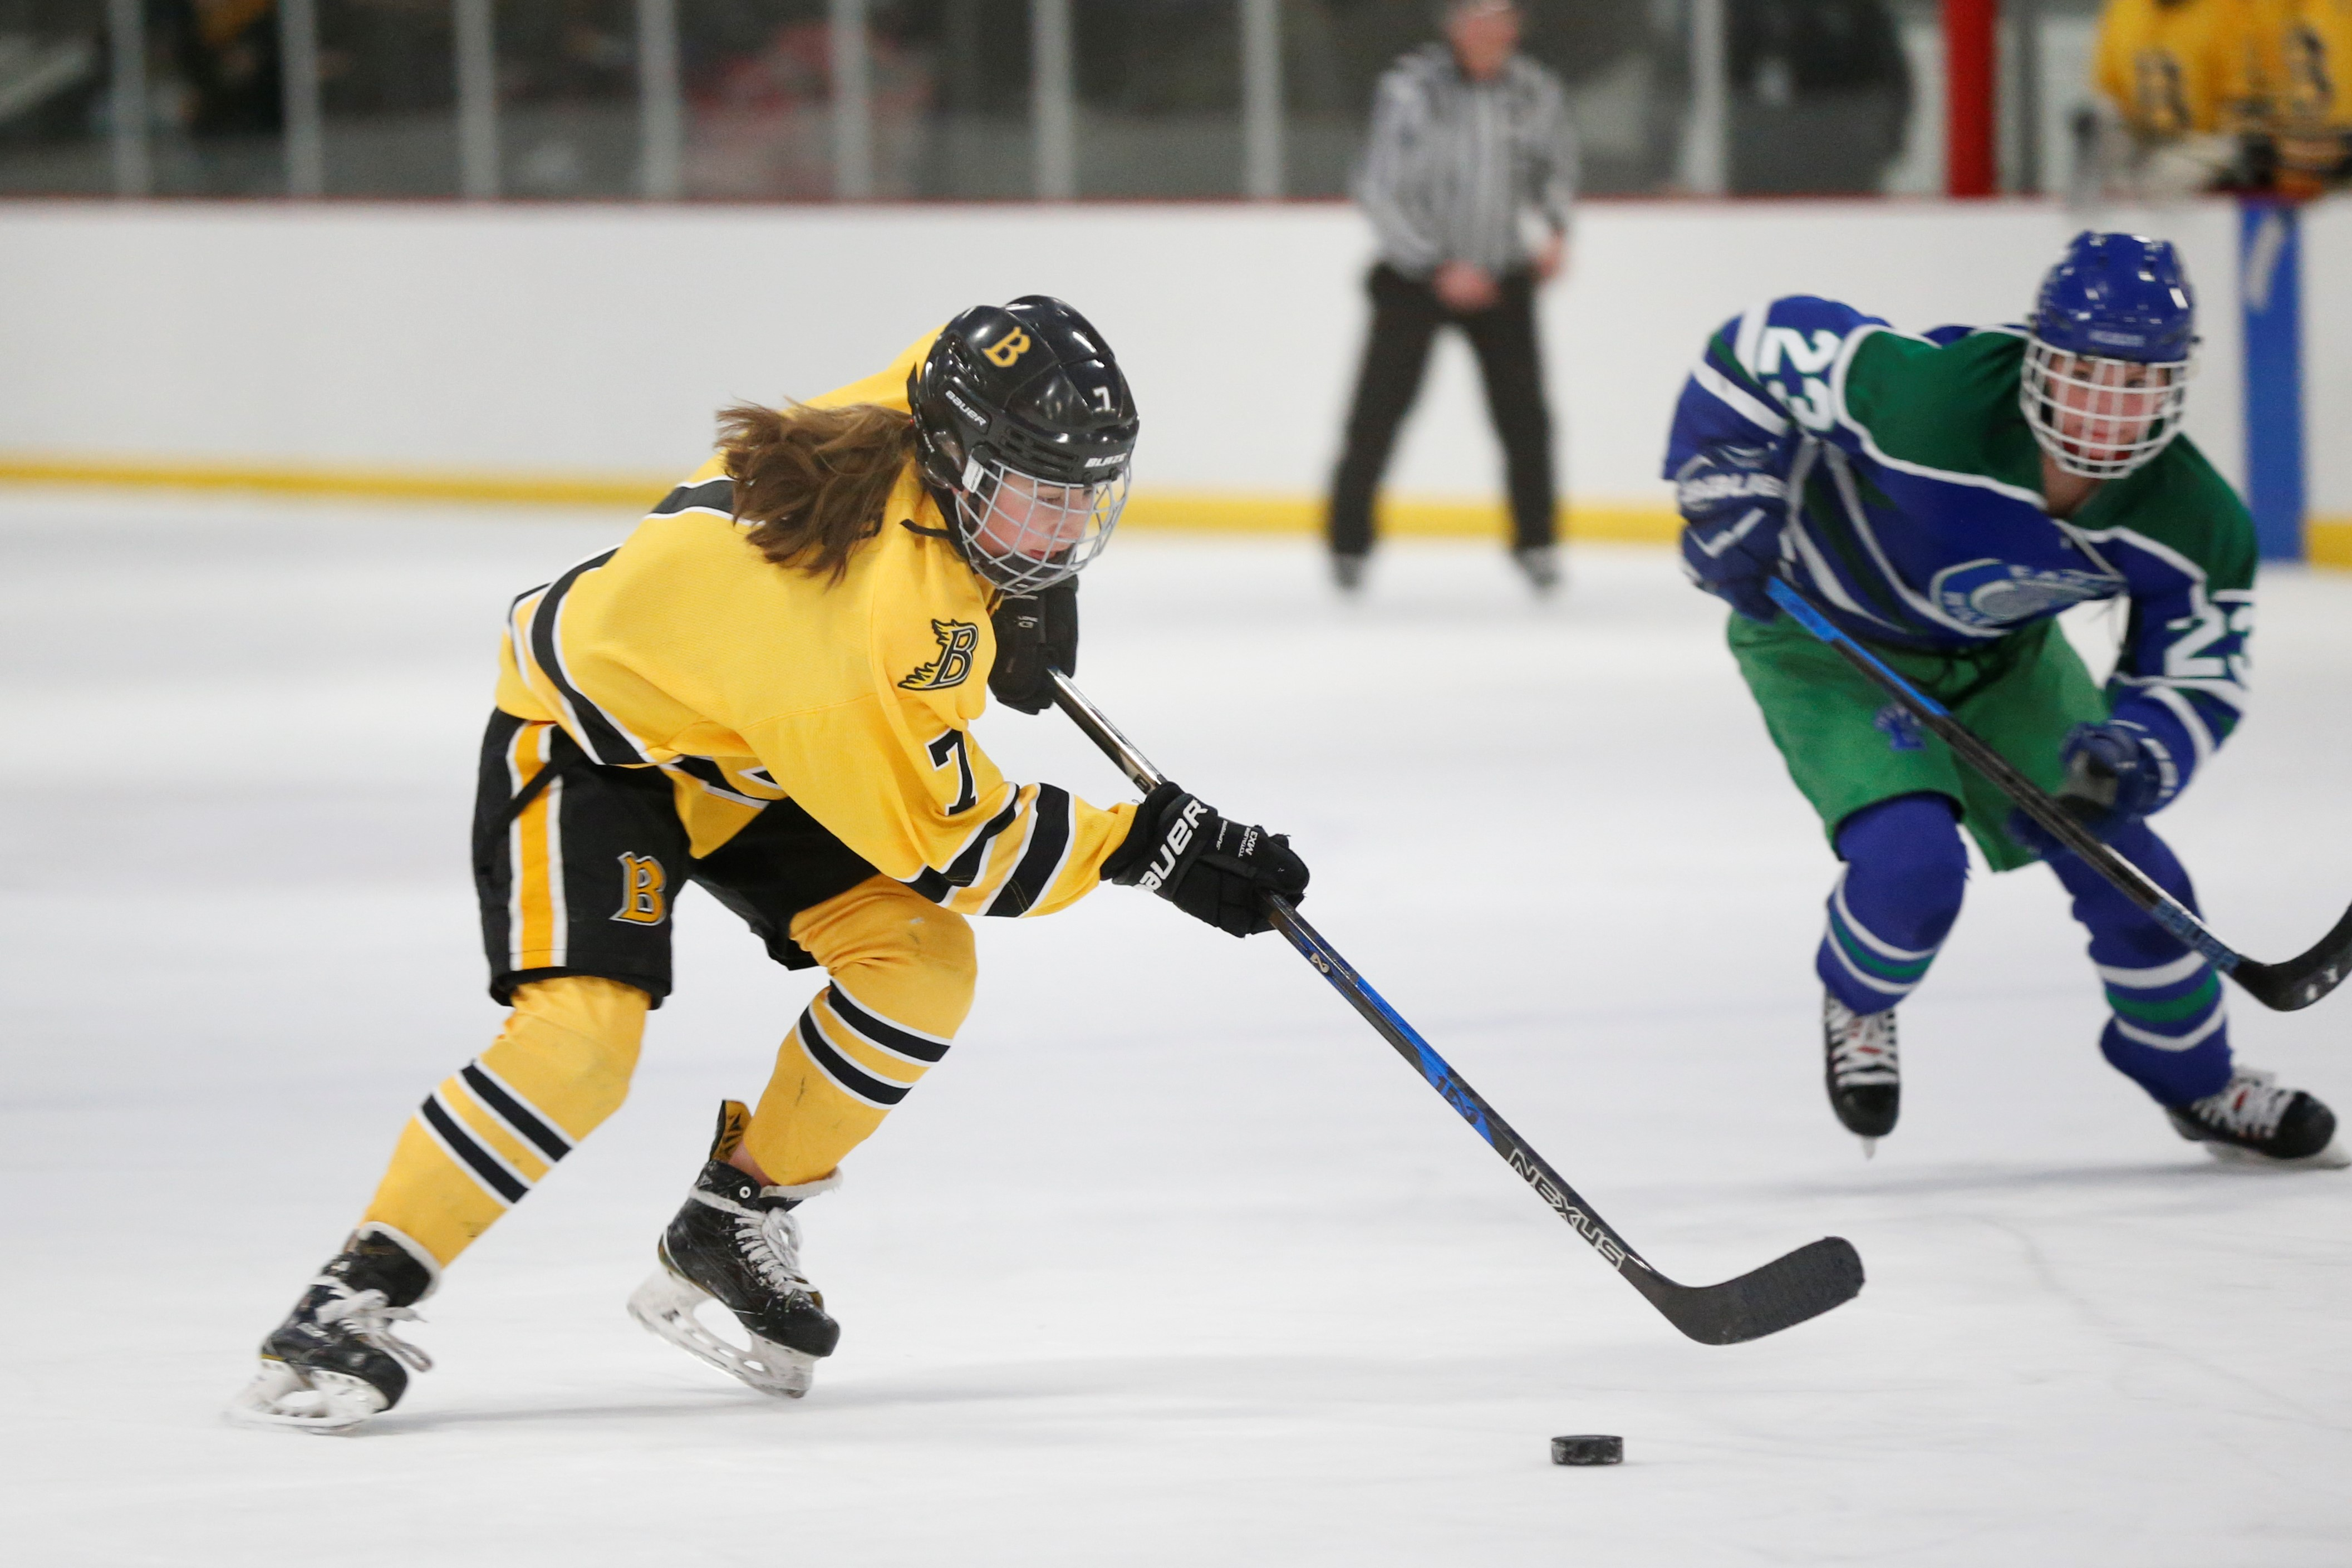 Burnsville's Allie Urlaub (7) races toward the Eagan net on a shorthanded scoring play late in the first period Wednesday night. Urlaub's goal gave the Blaze a 1-0 lead. Photo by Jeff Lawler, SportsEngine